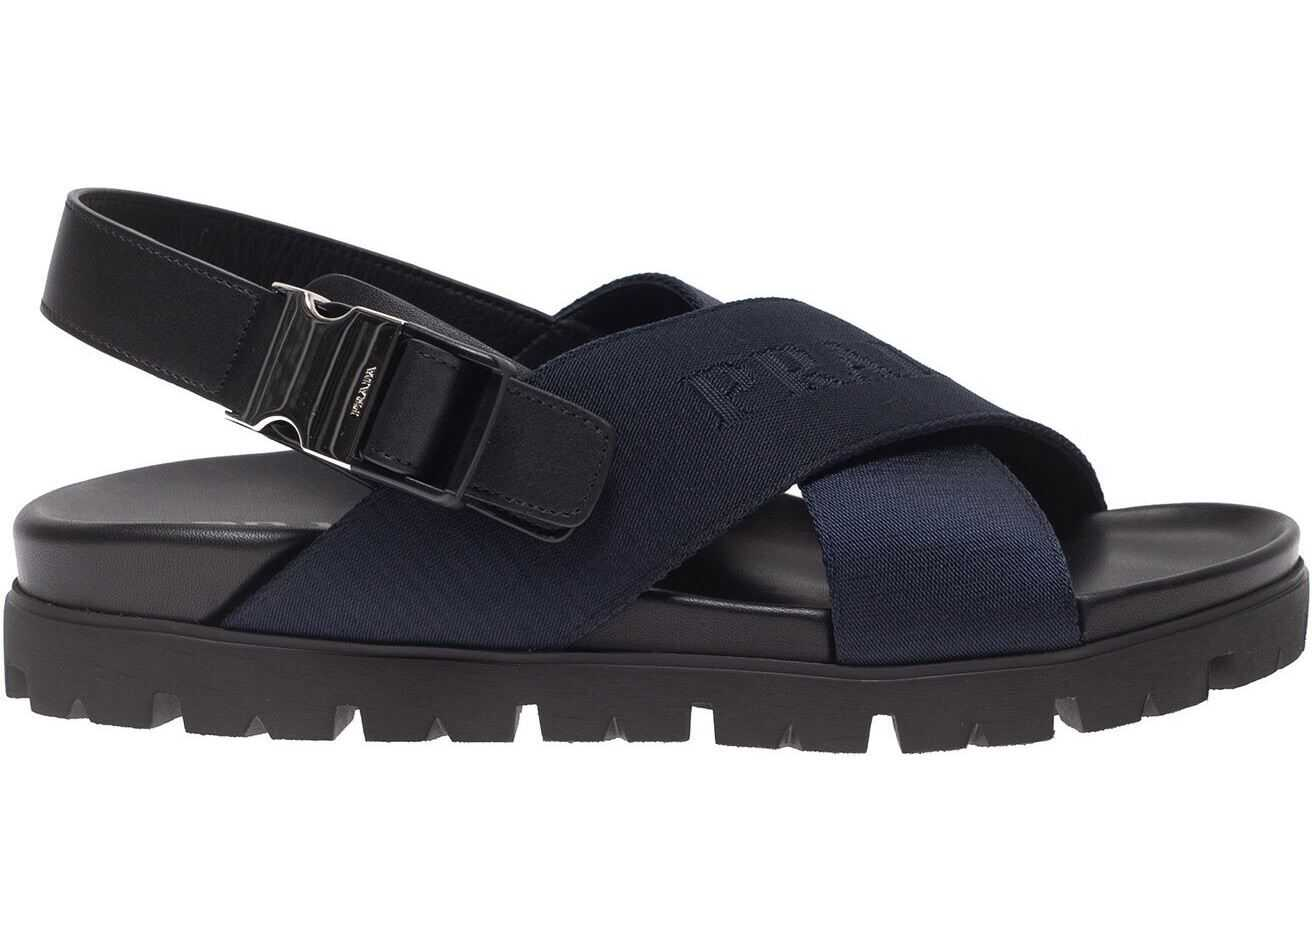 Prada Sandals In Blue With Crossed Band Blue